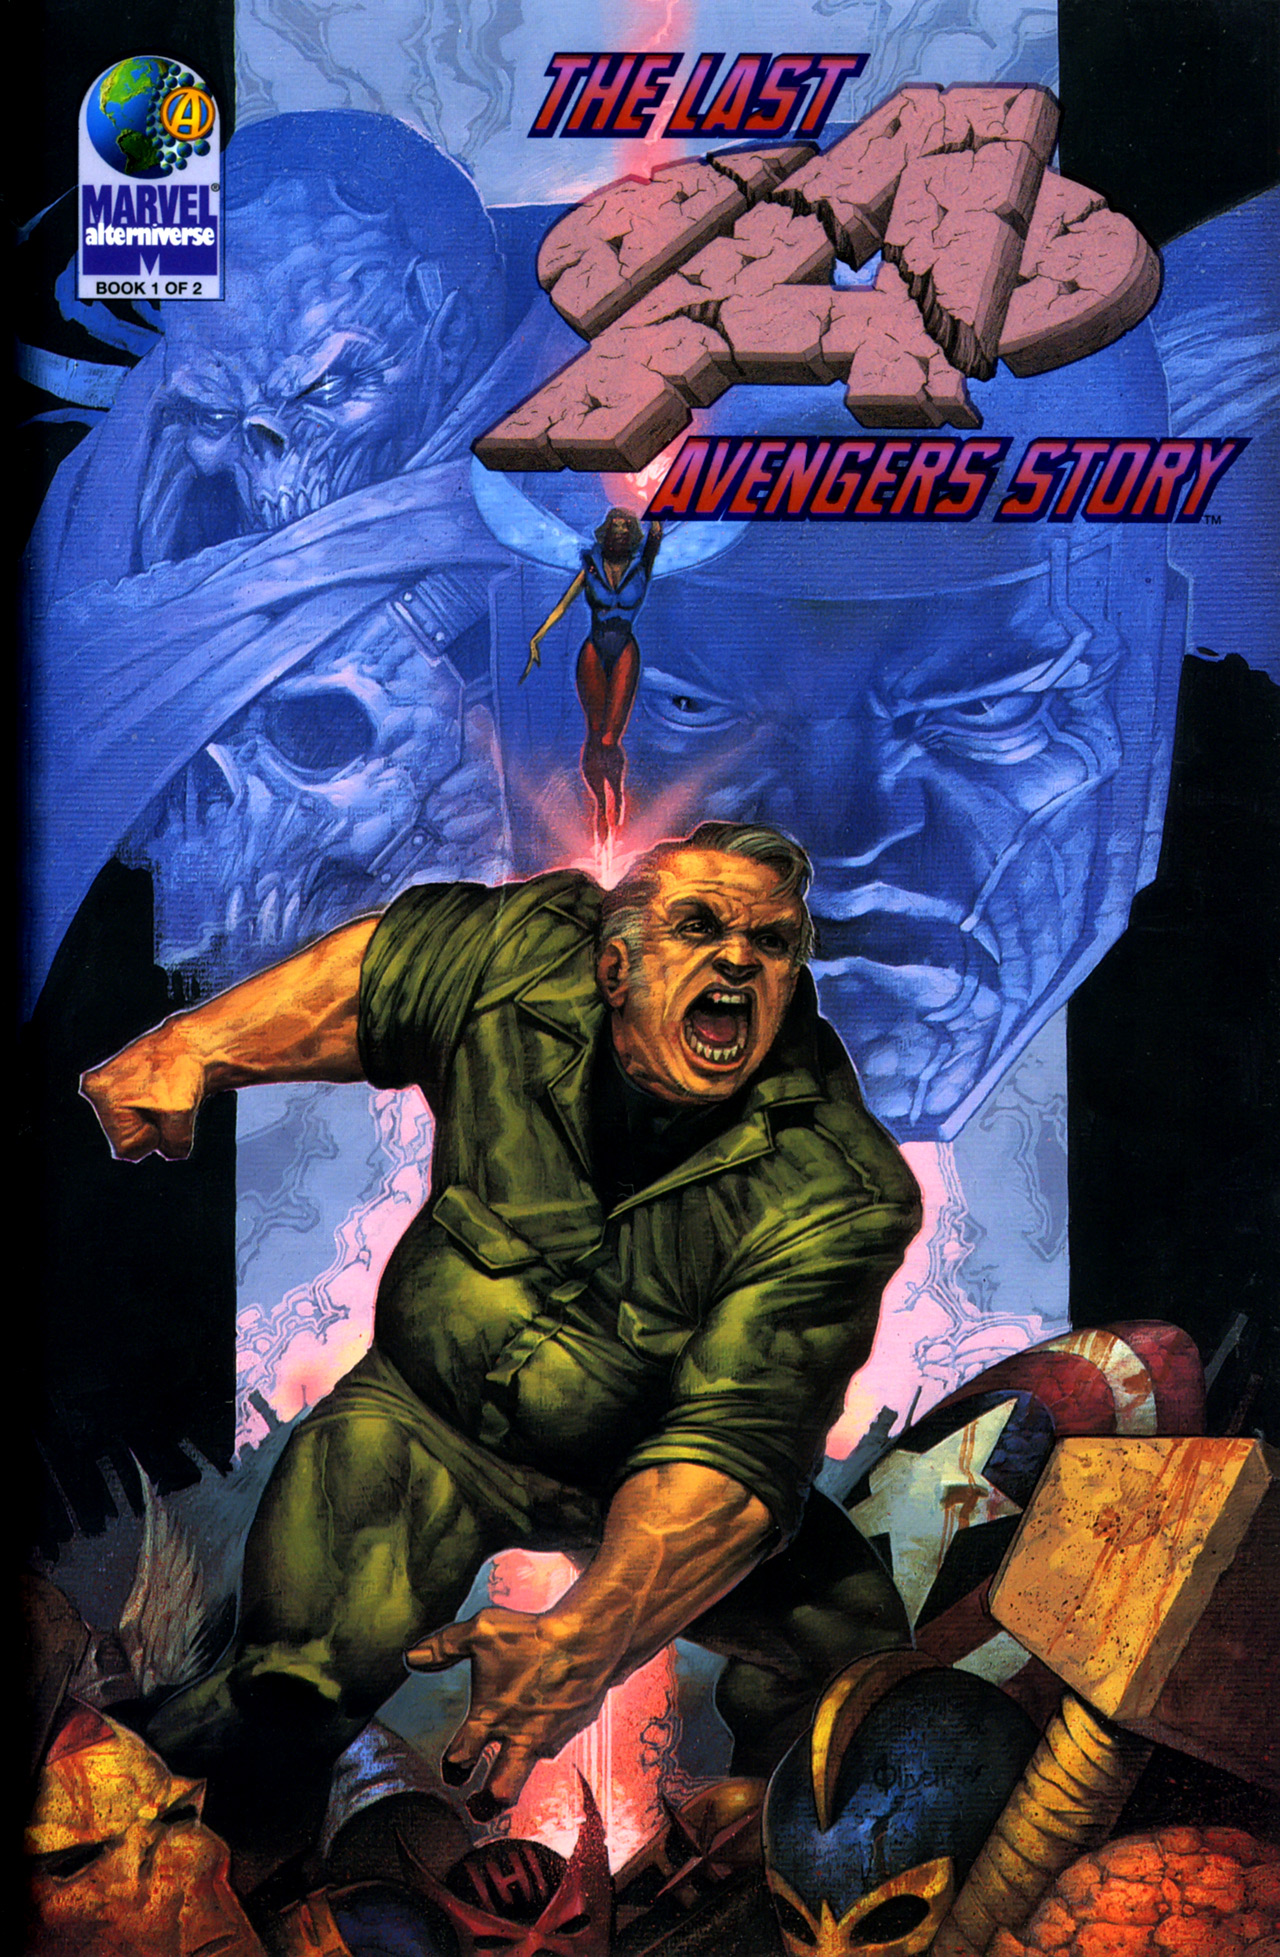 The Last Avengers Story 1 Page 1